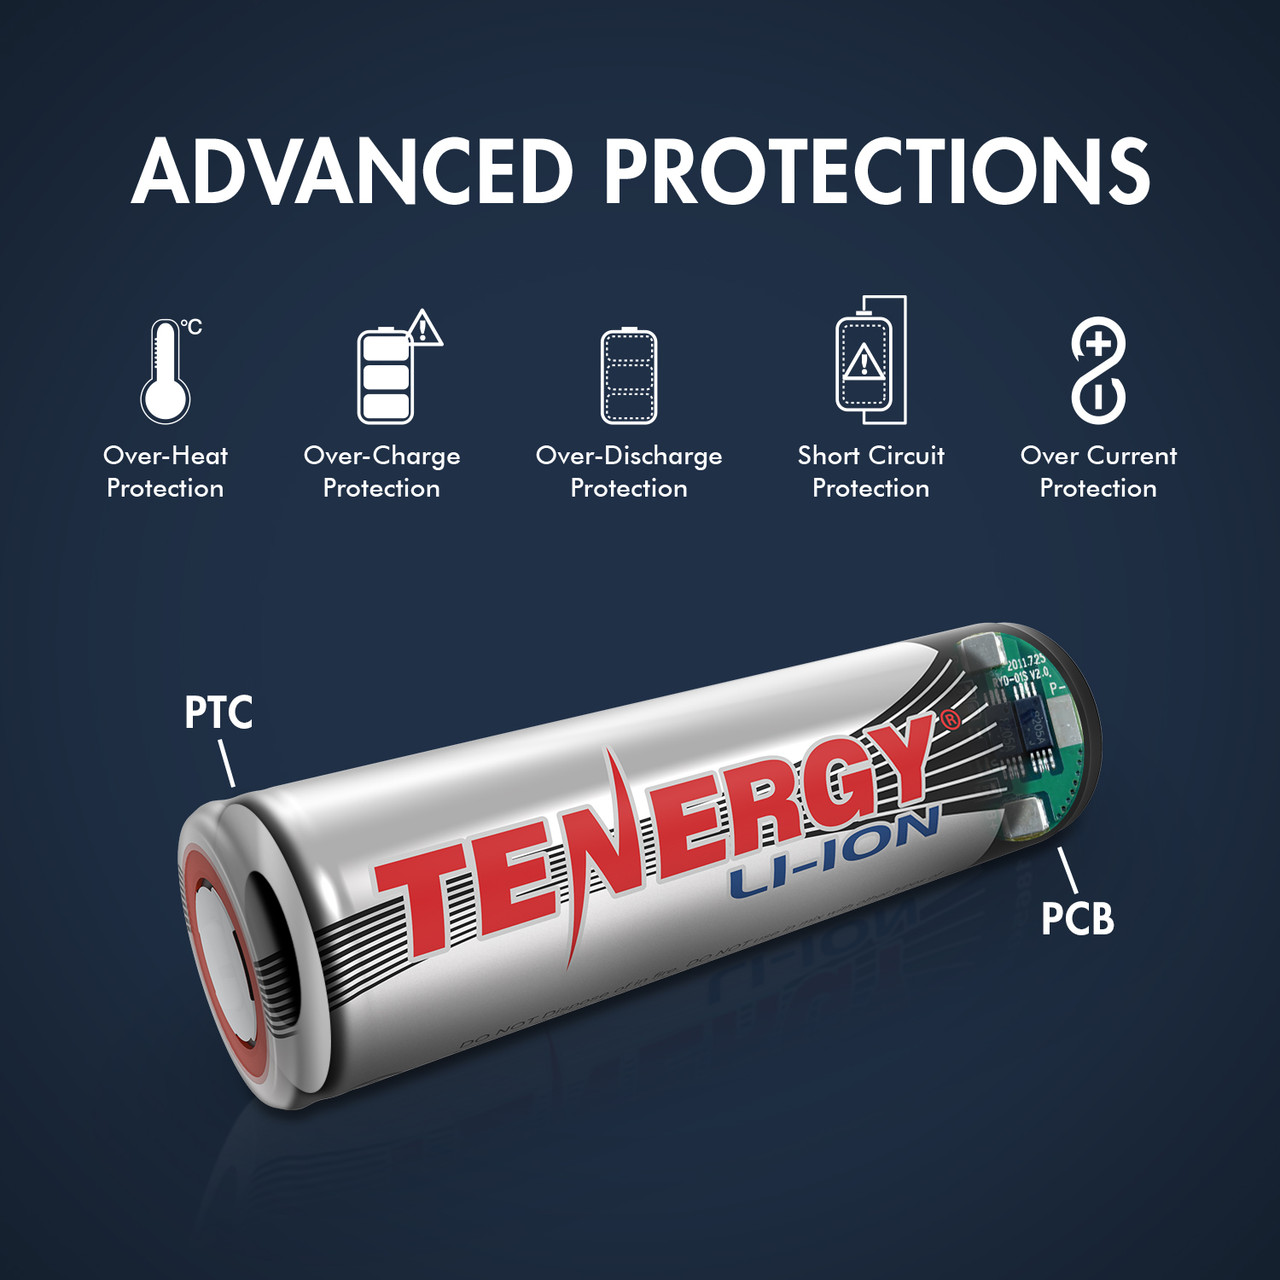 Combo: 4 PCS Tenergy Li-ion 18650 Cylindrical 3.7V 2600mAh Flat Top Rechargeable Batteries w/ PCB